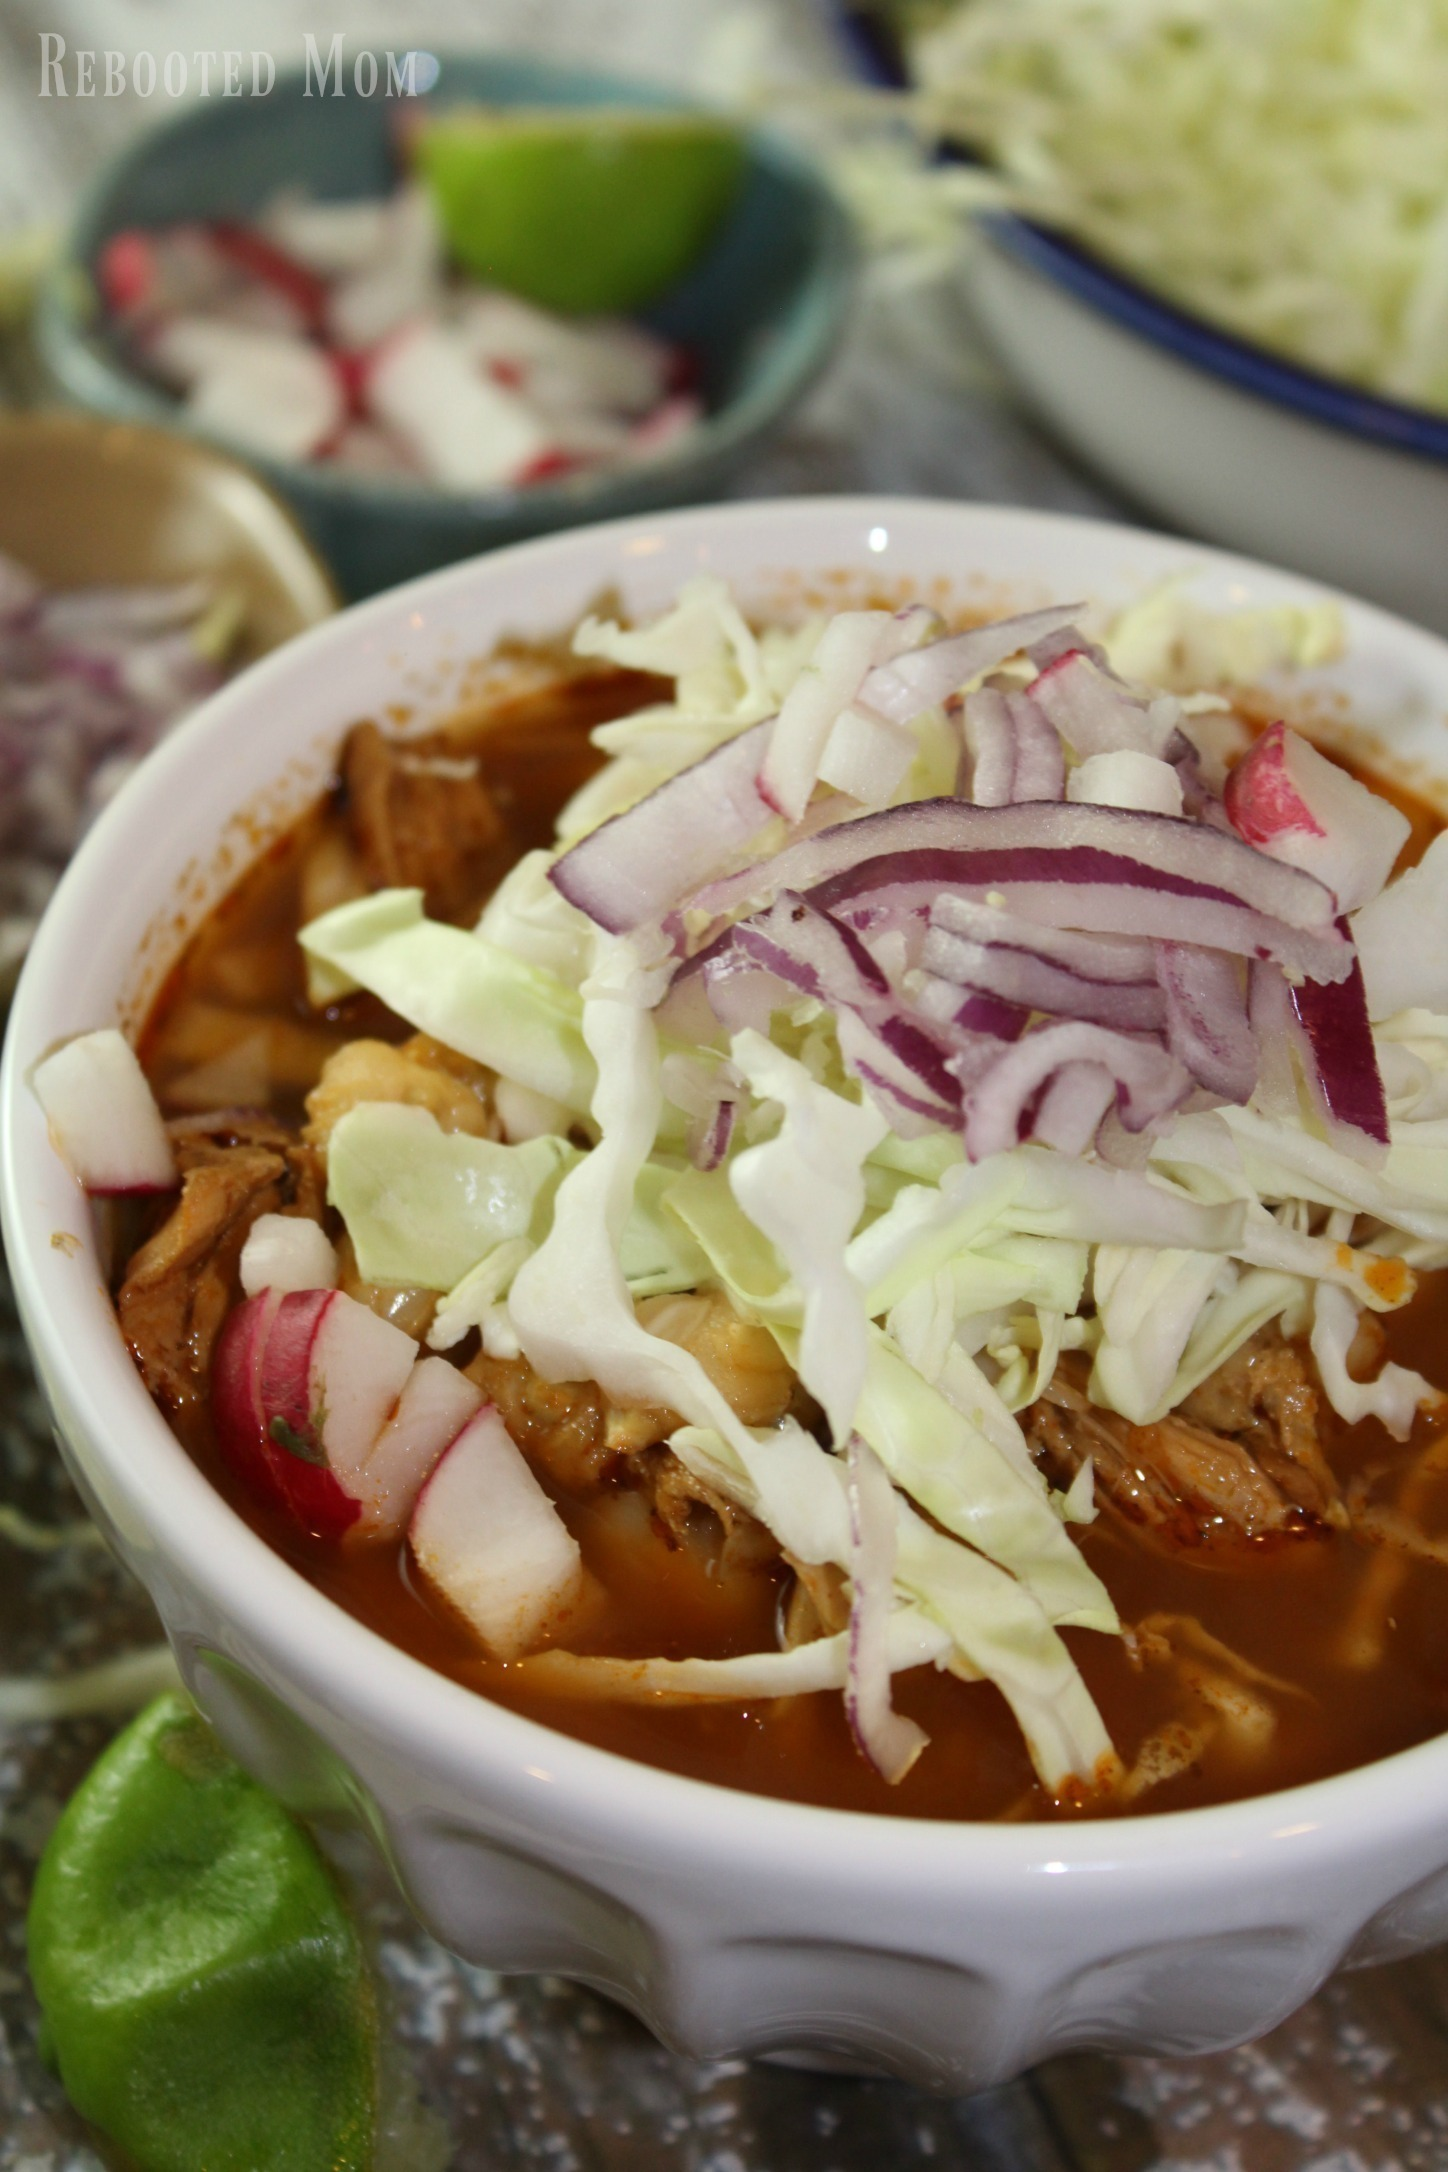 This Mexican stew features chiles and hominy, in a rich flavorsome broth. Dress up the stew with radishes, onions and sliced cabbage. It's traditional to serve the chicken in whole pieces but you can also pull it off the bone for even greater flavor.